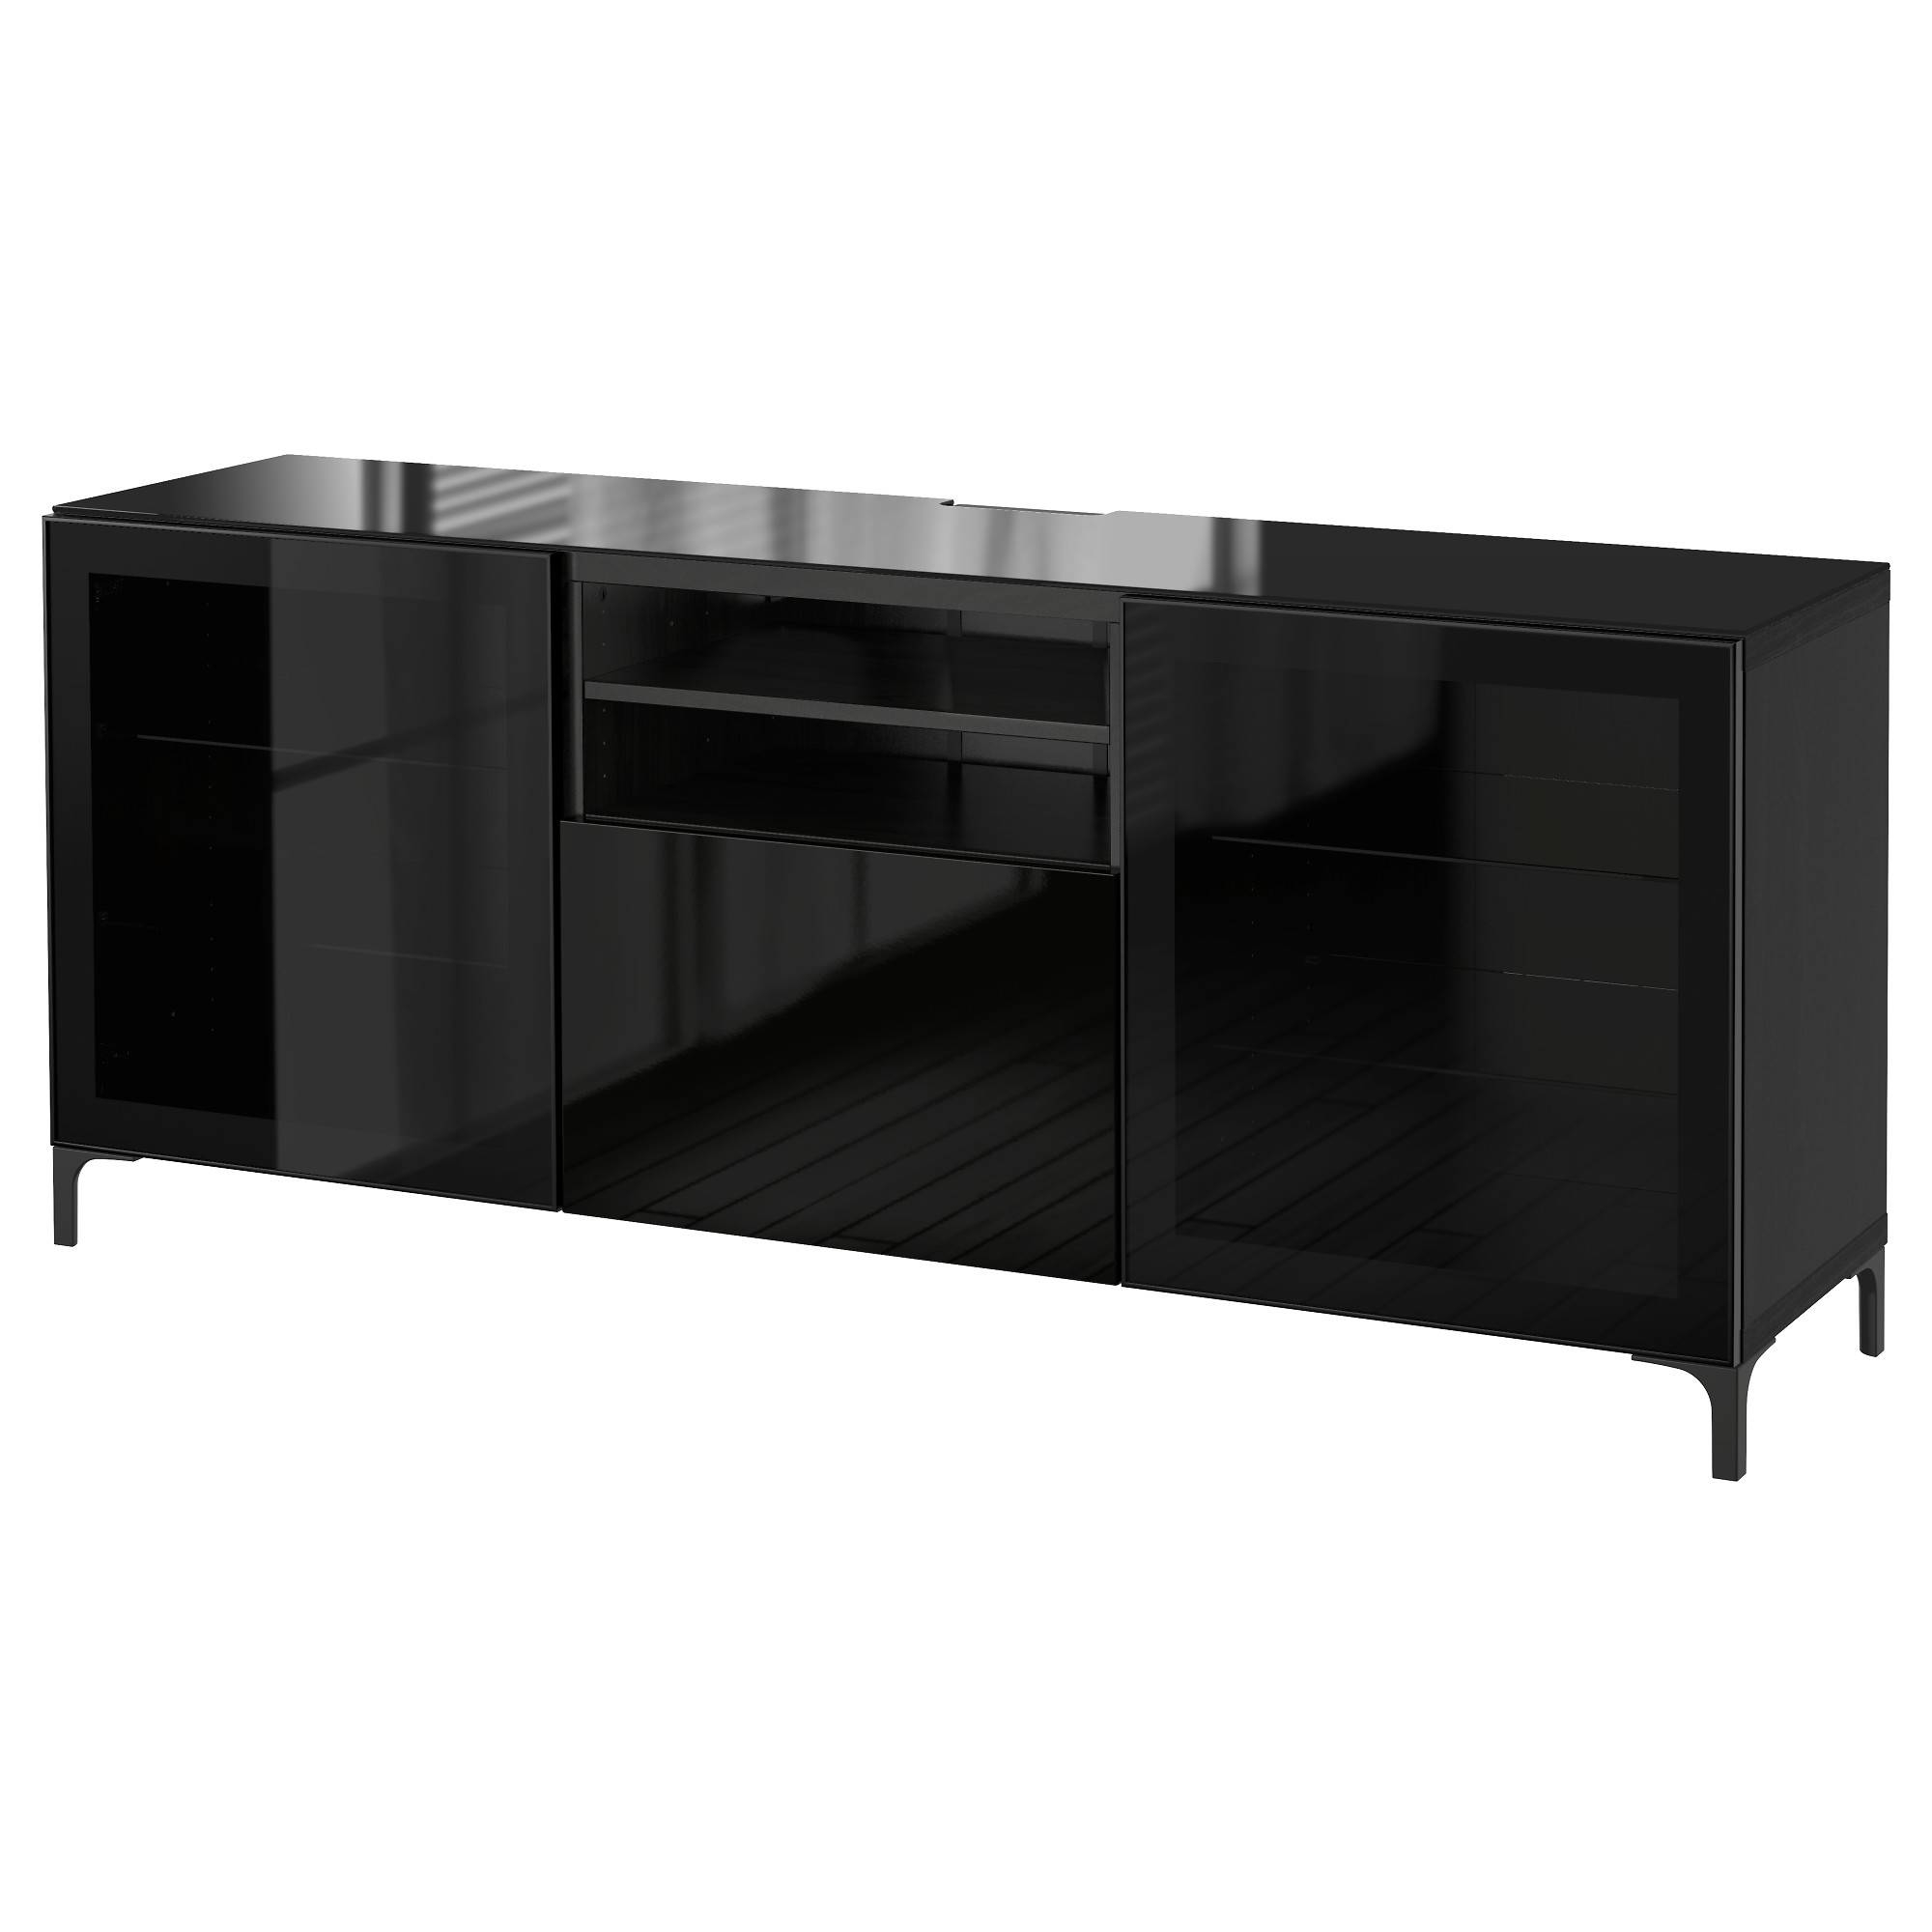 15 best collection of grey gloss sideboards. Black Bedroom Furniture Sets. Home Design Ideas